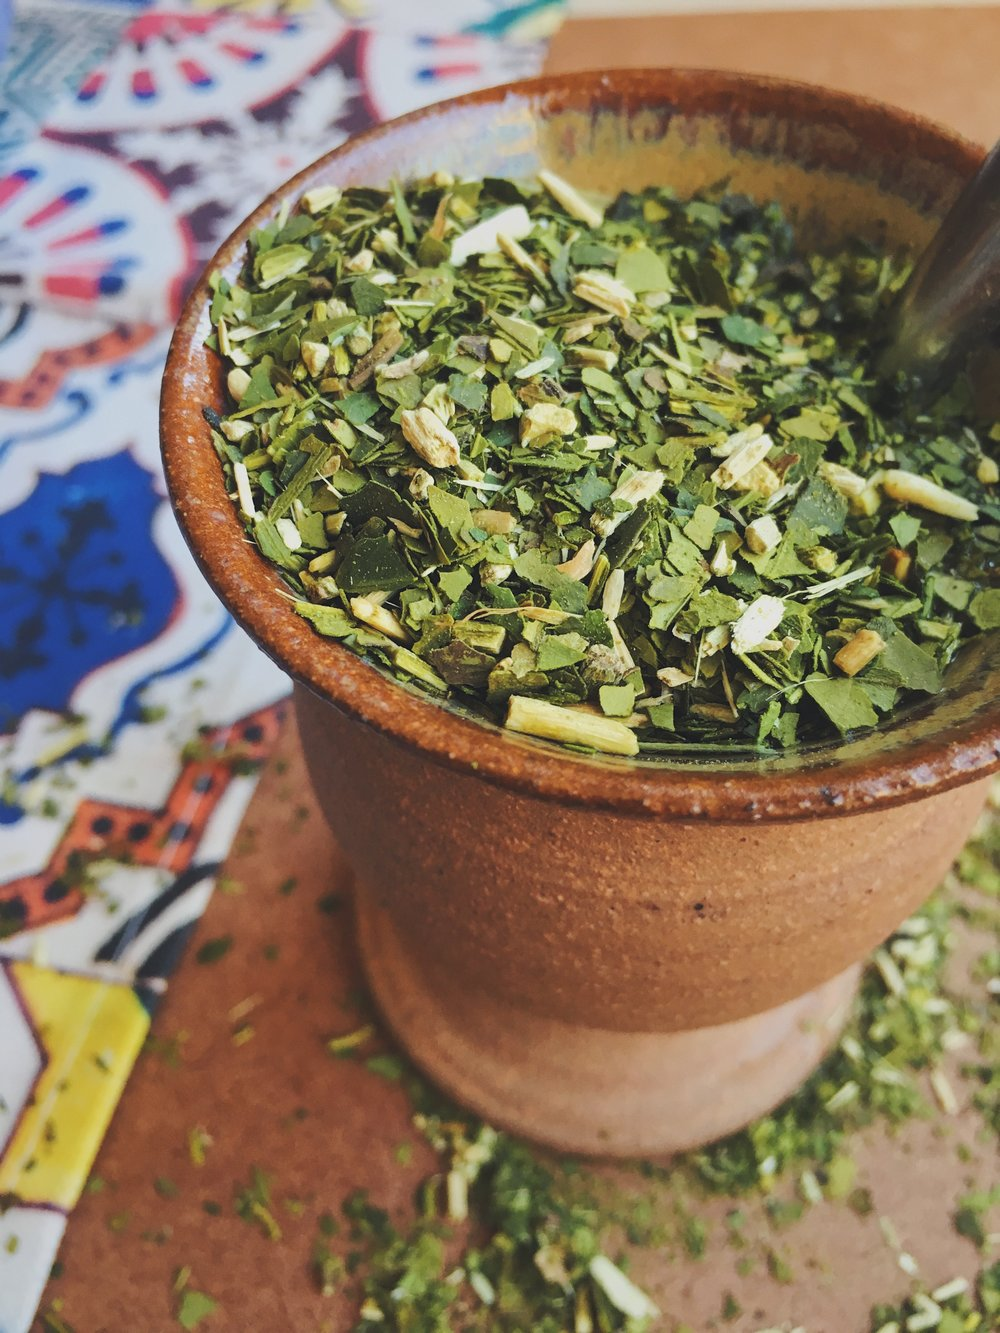 yerba maté - the drink beyond the drink